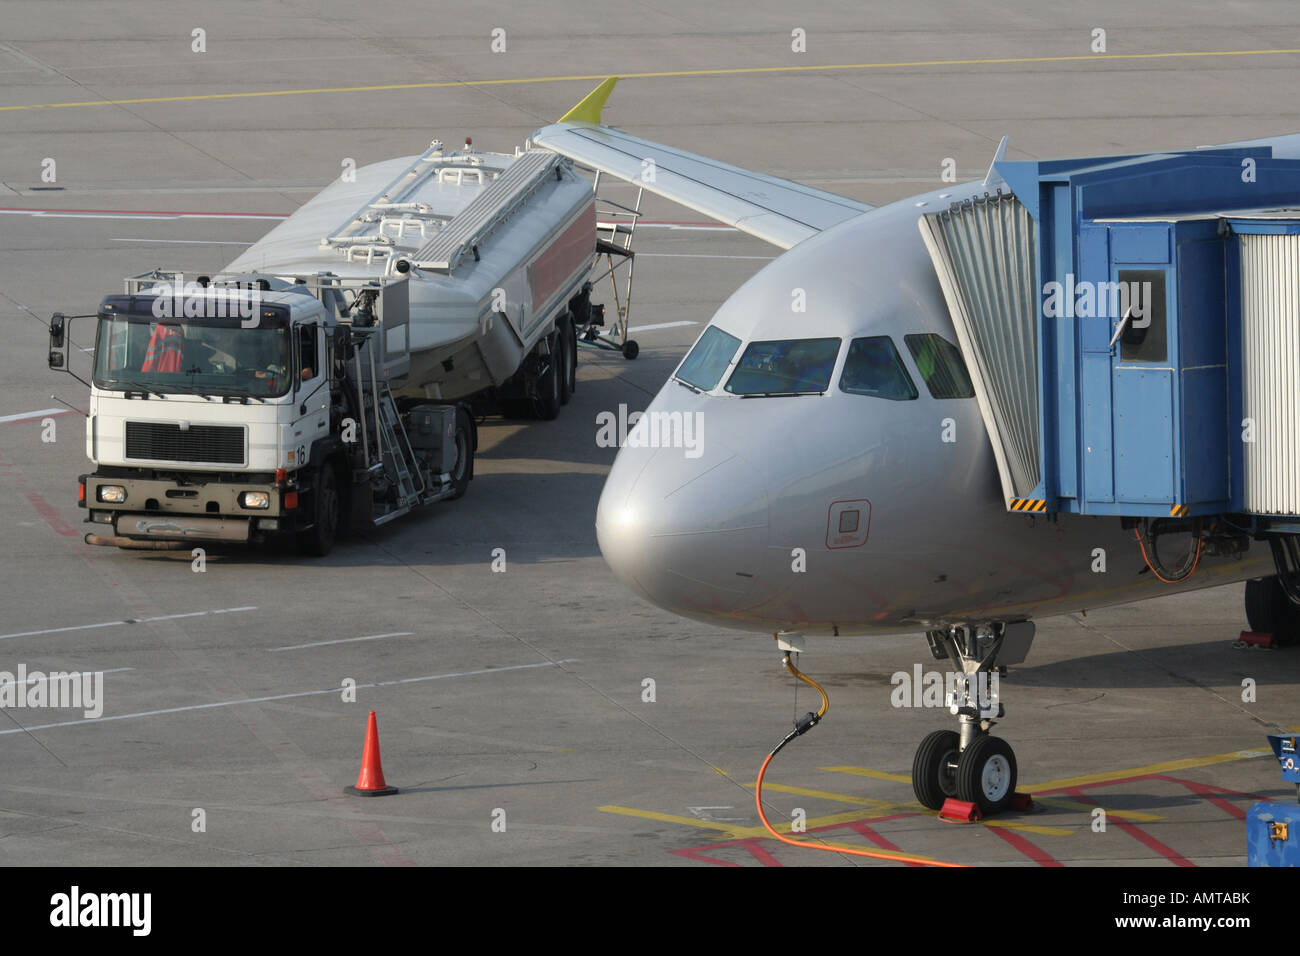 Jet plane refuelling on the ground at airport with fuel truck. Aviation and  air transport